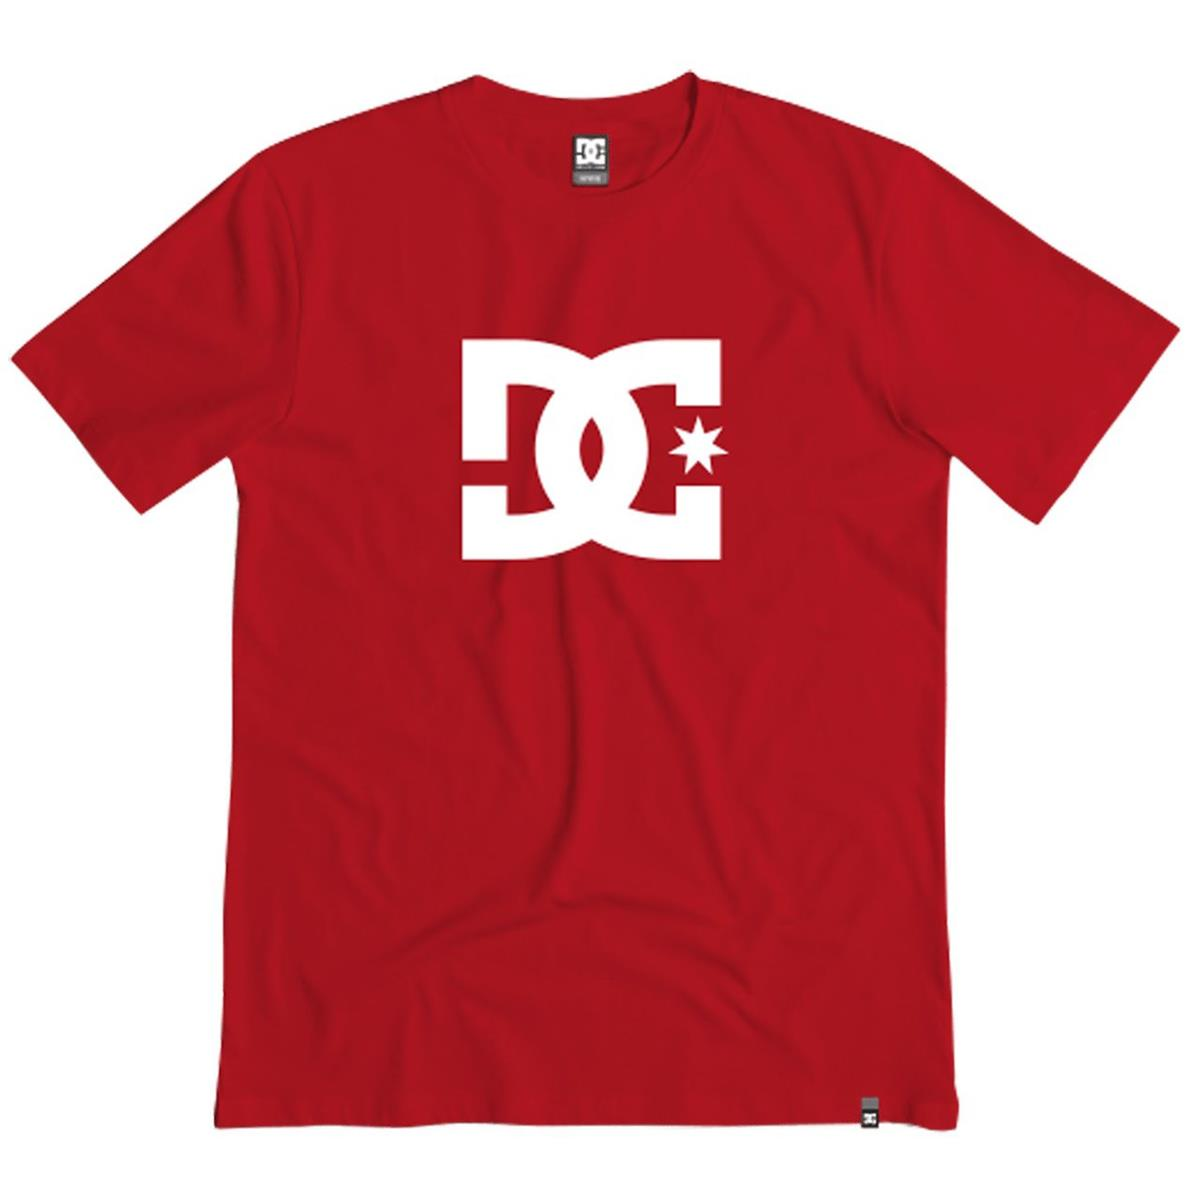 DC T-Shirt Star 2 Racing Red